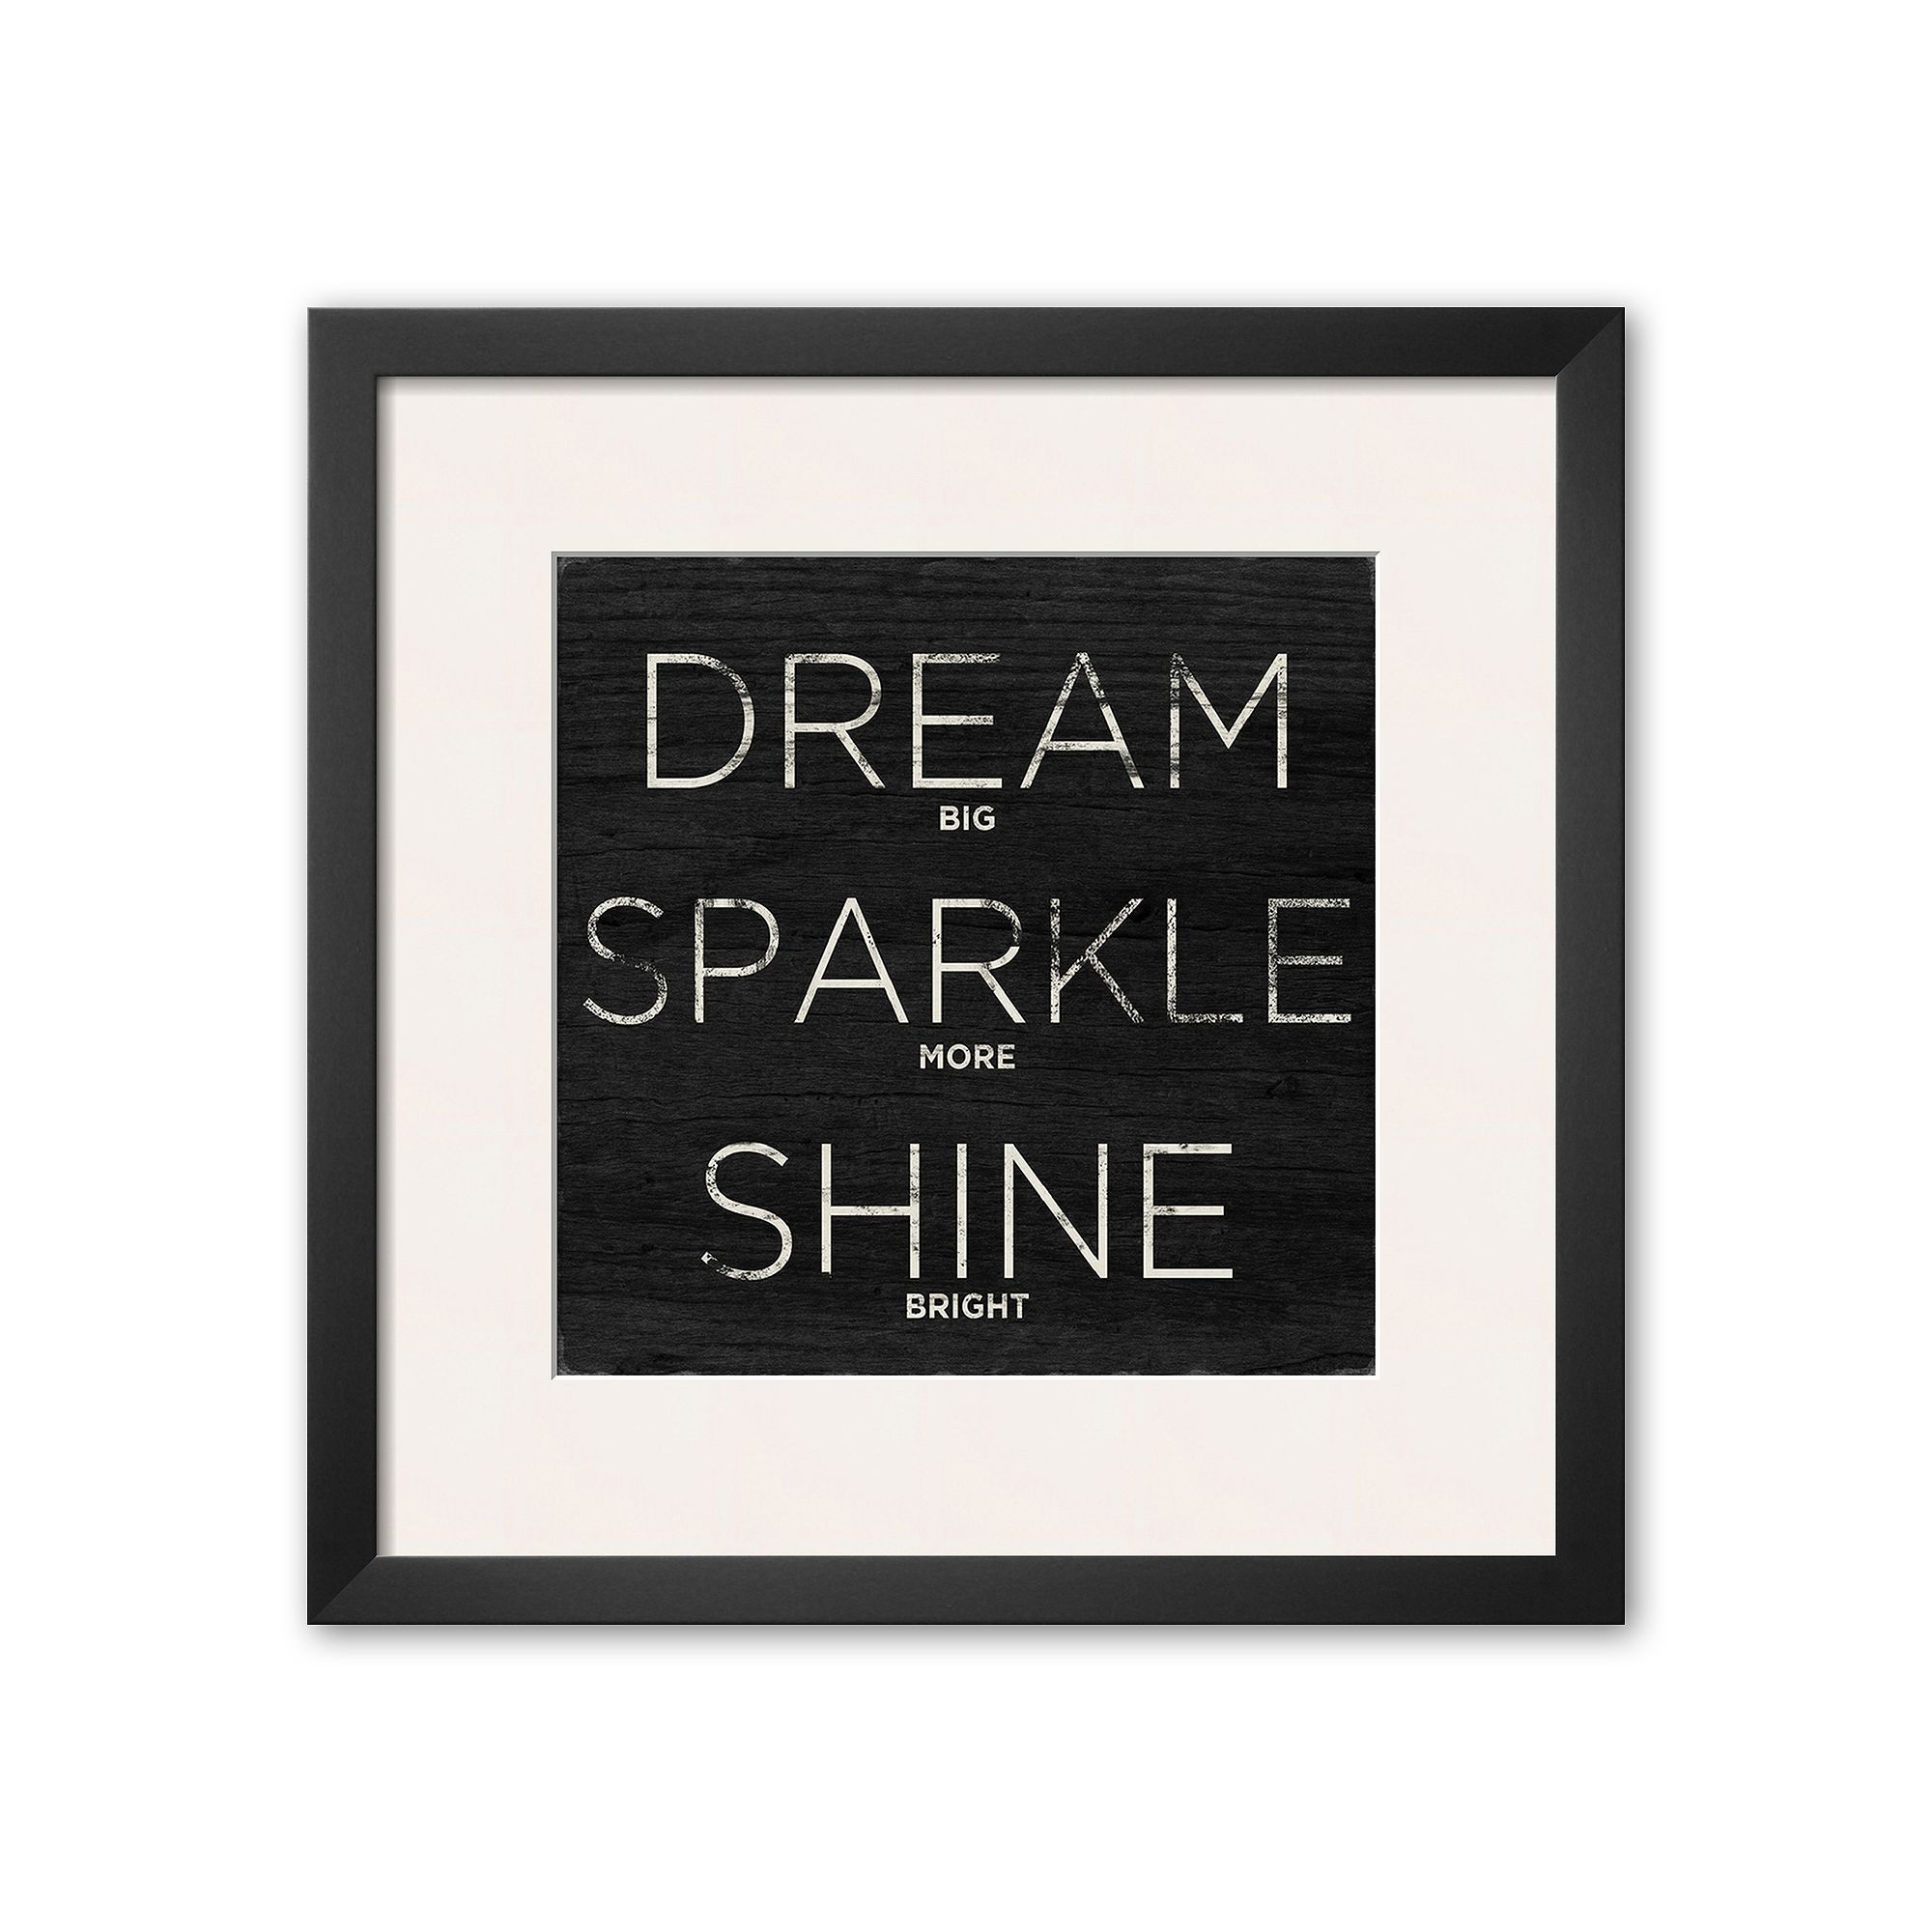 Art dream sparkle shine framed art print multicolor products